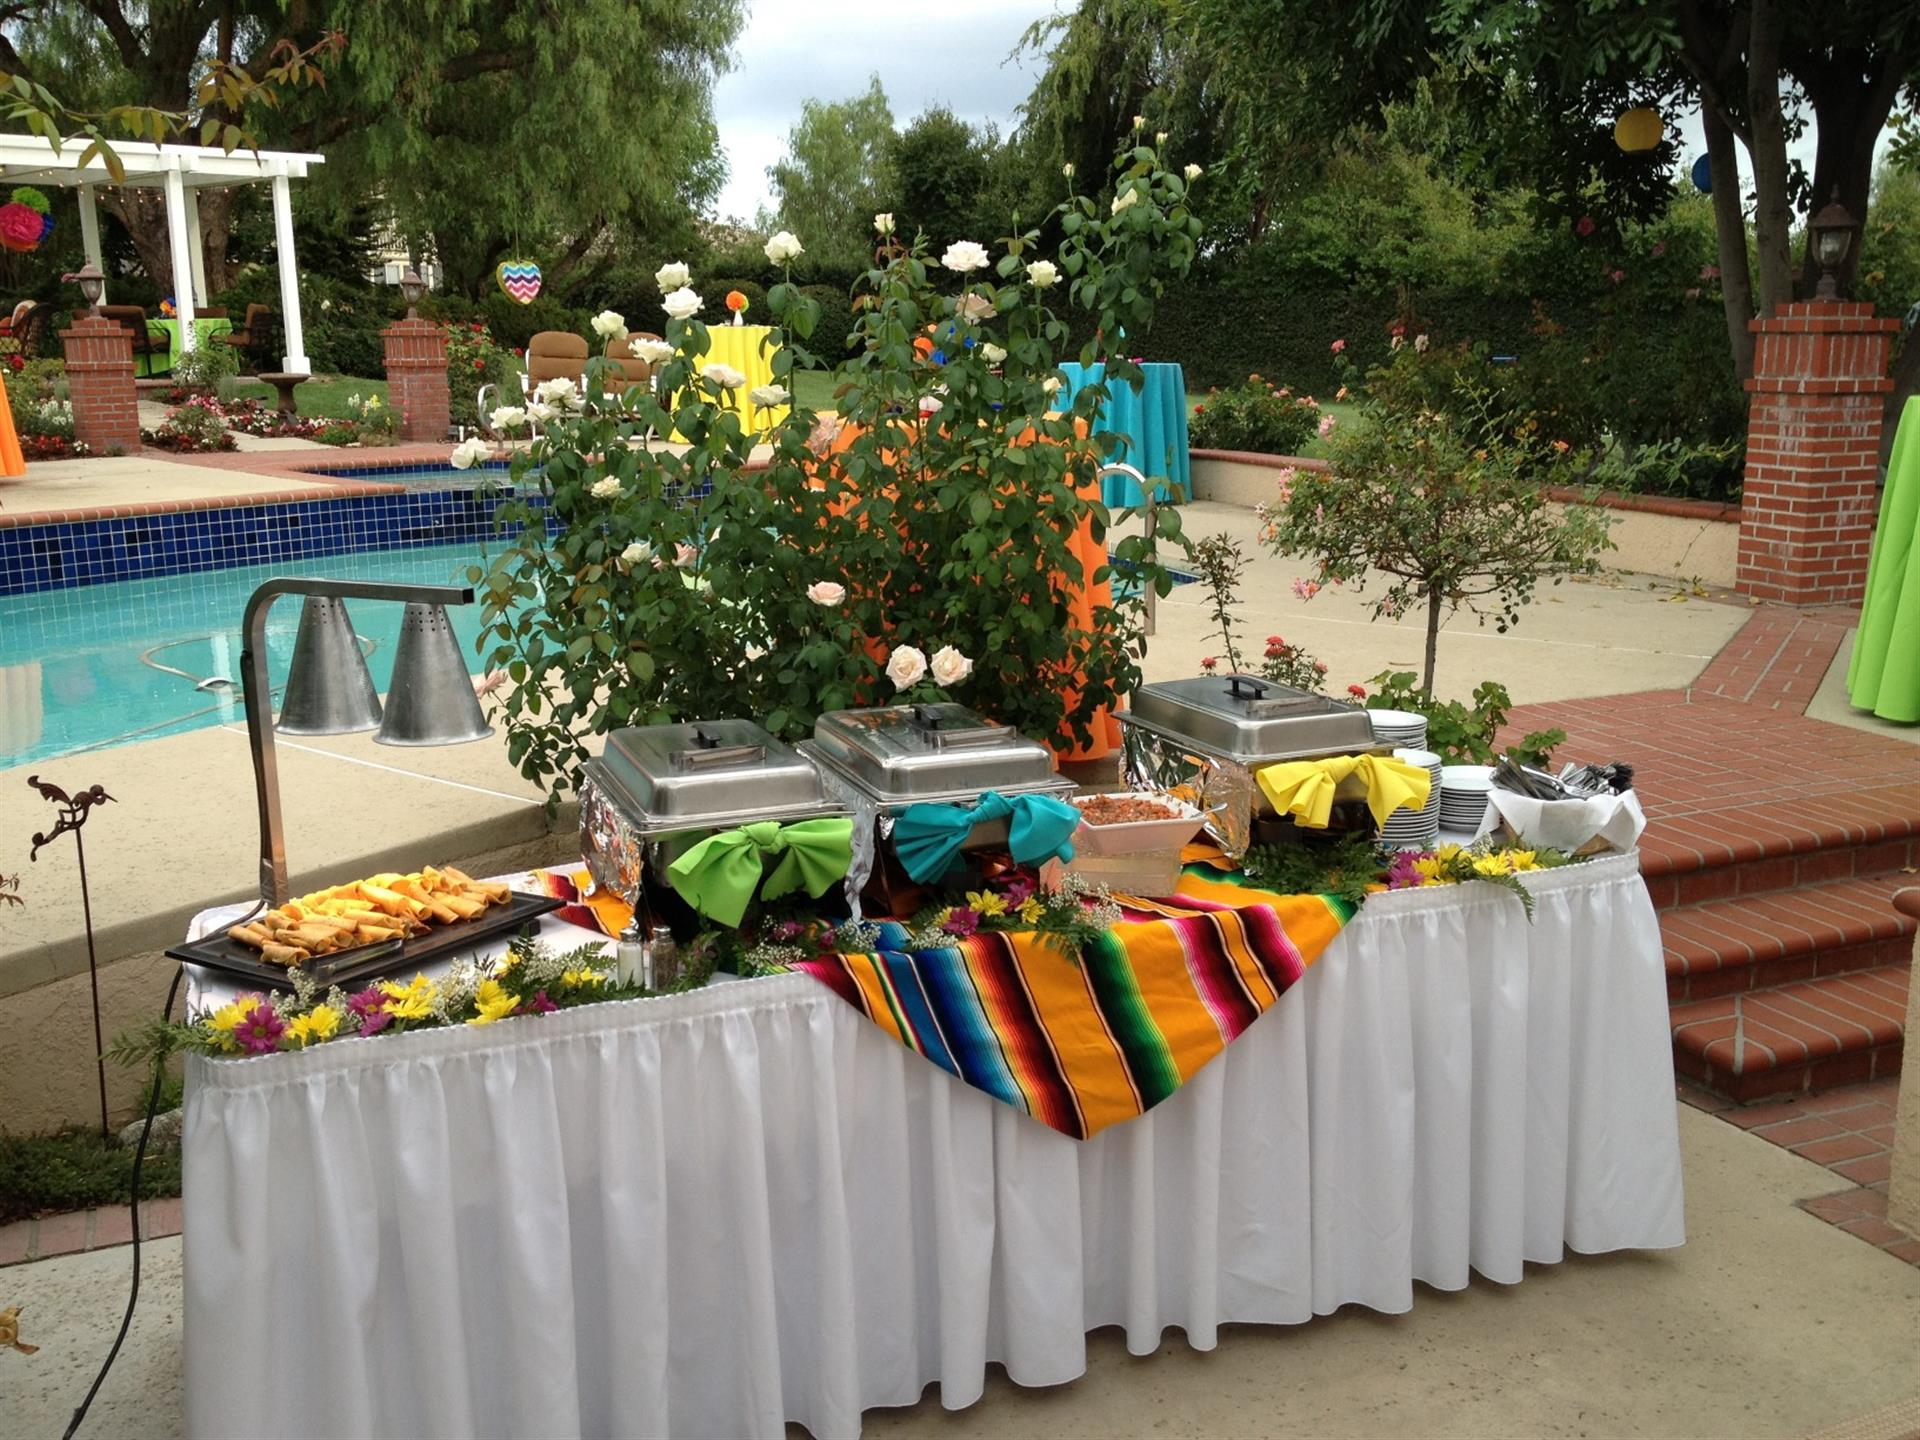 Catering table with sternos. Pool in background.